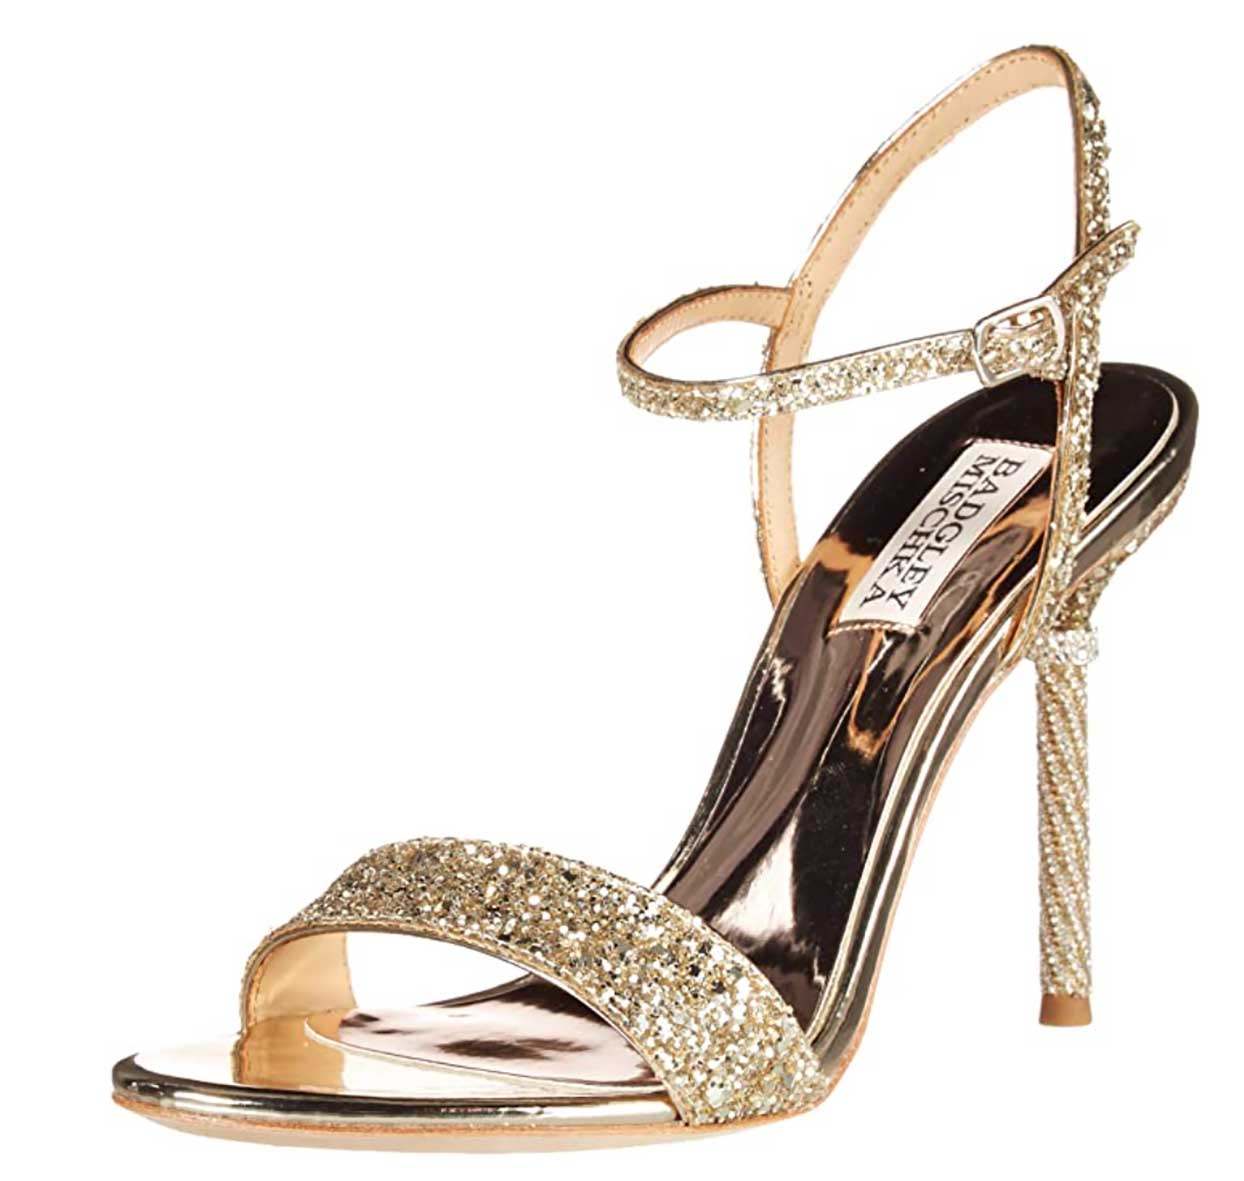 Badgley Mischka Women's Olympia Heeled Sandal